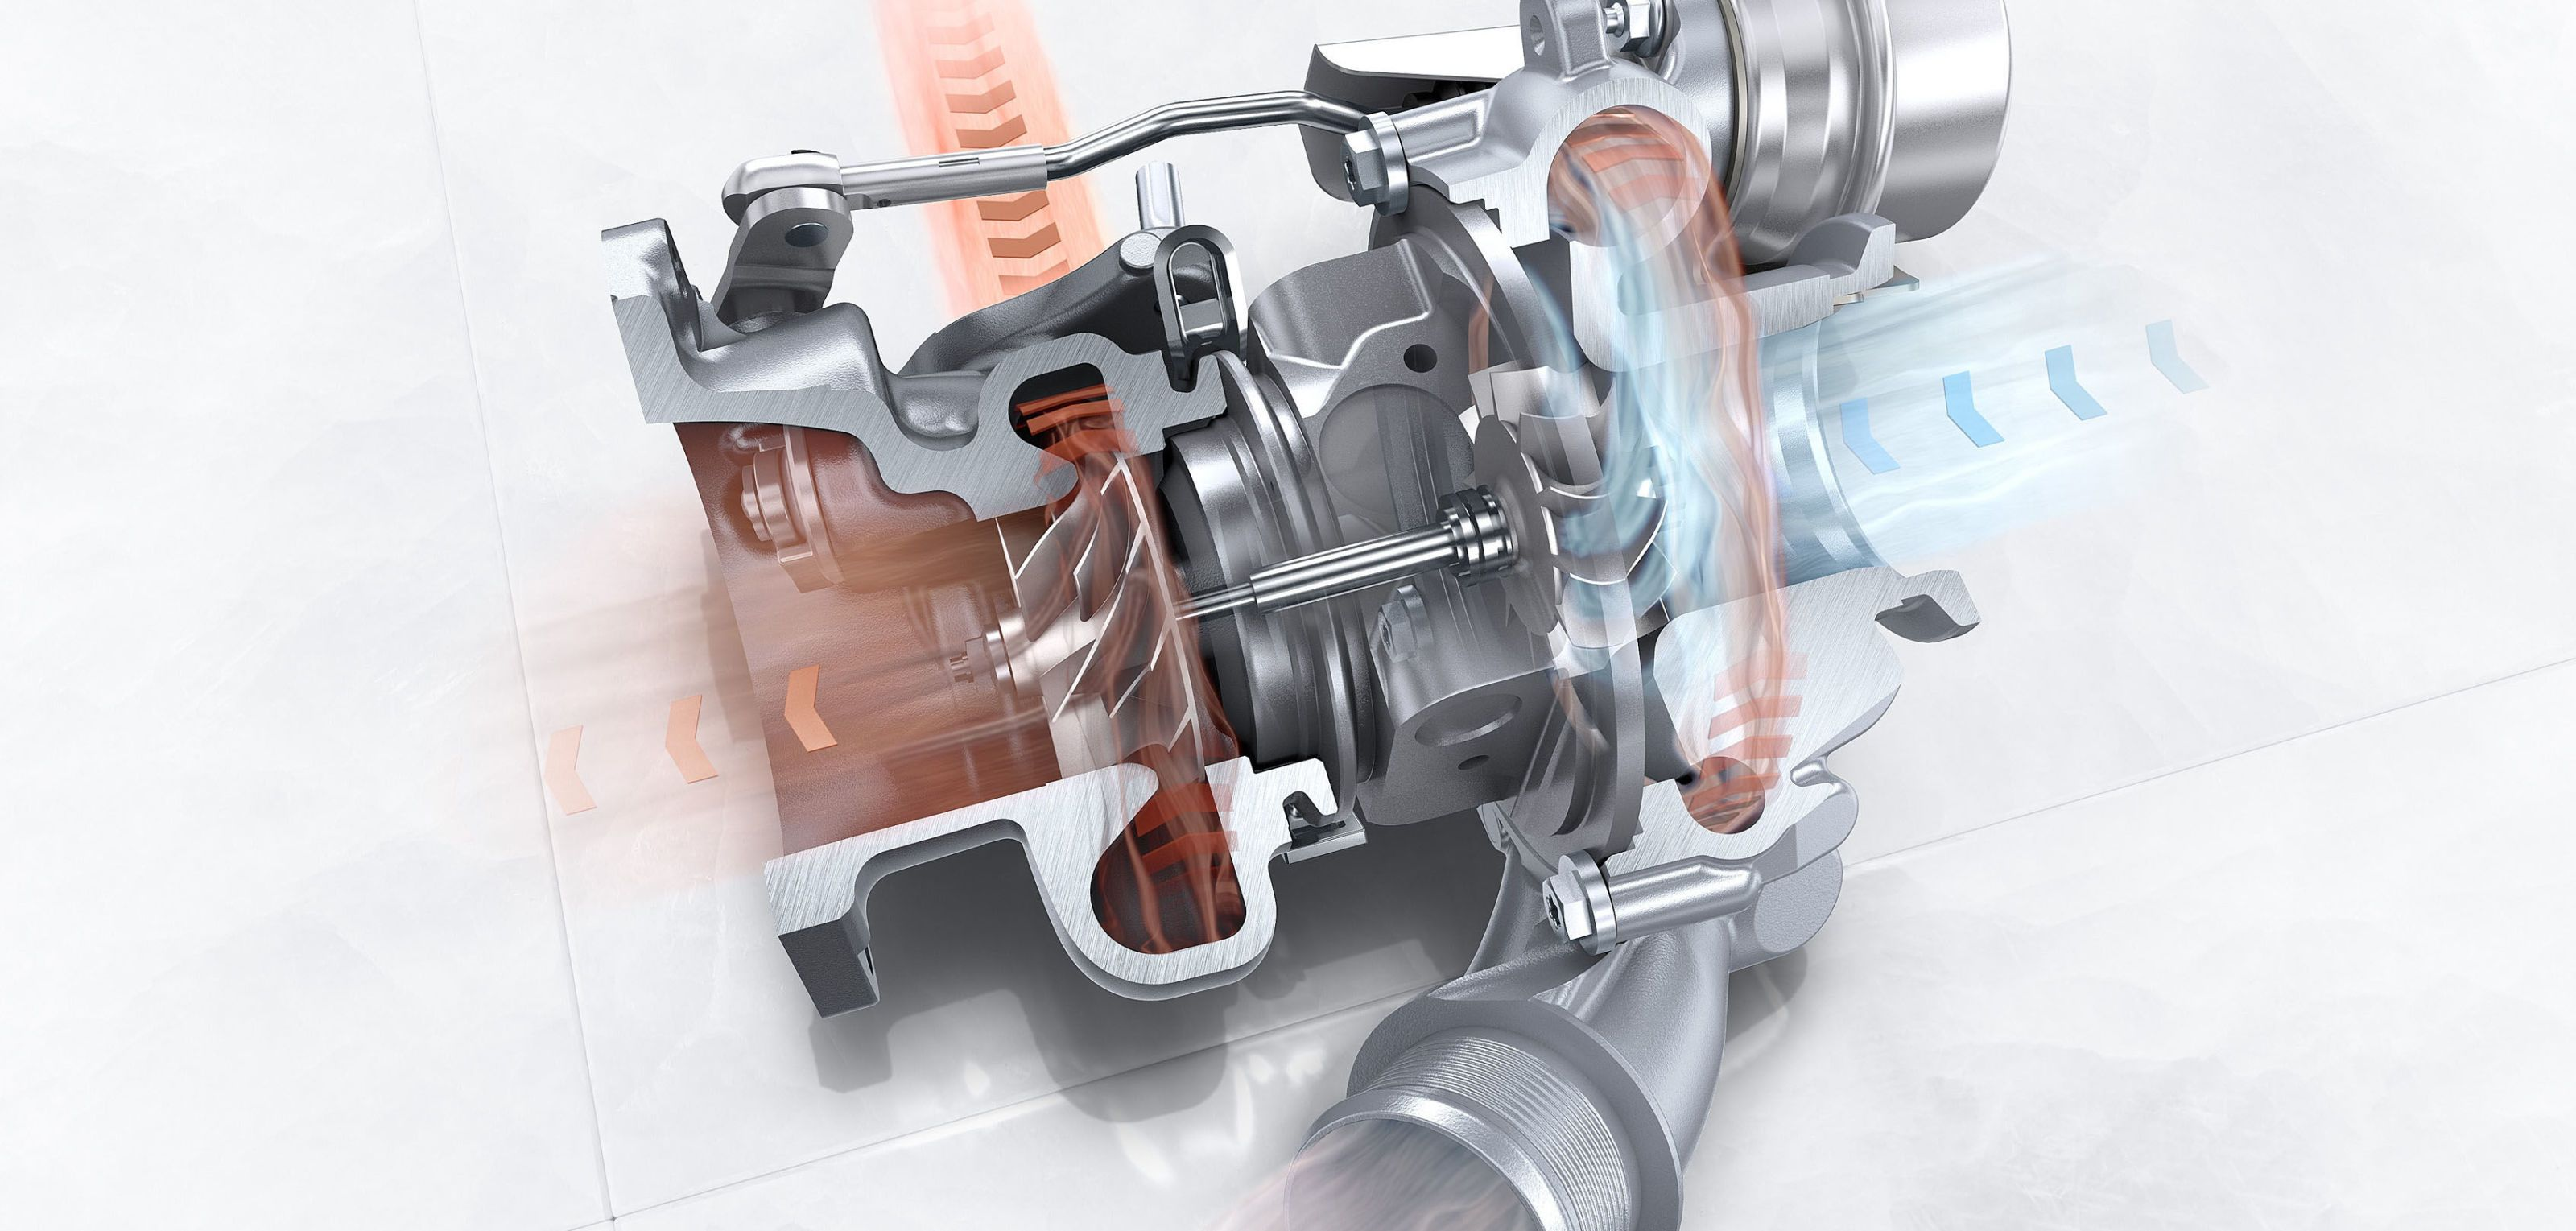 Booster Shot: Future Turbochargers Will Bring Efficiency and Performance to the Market